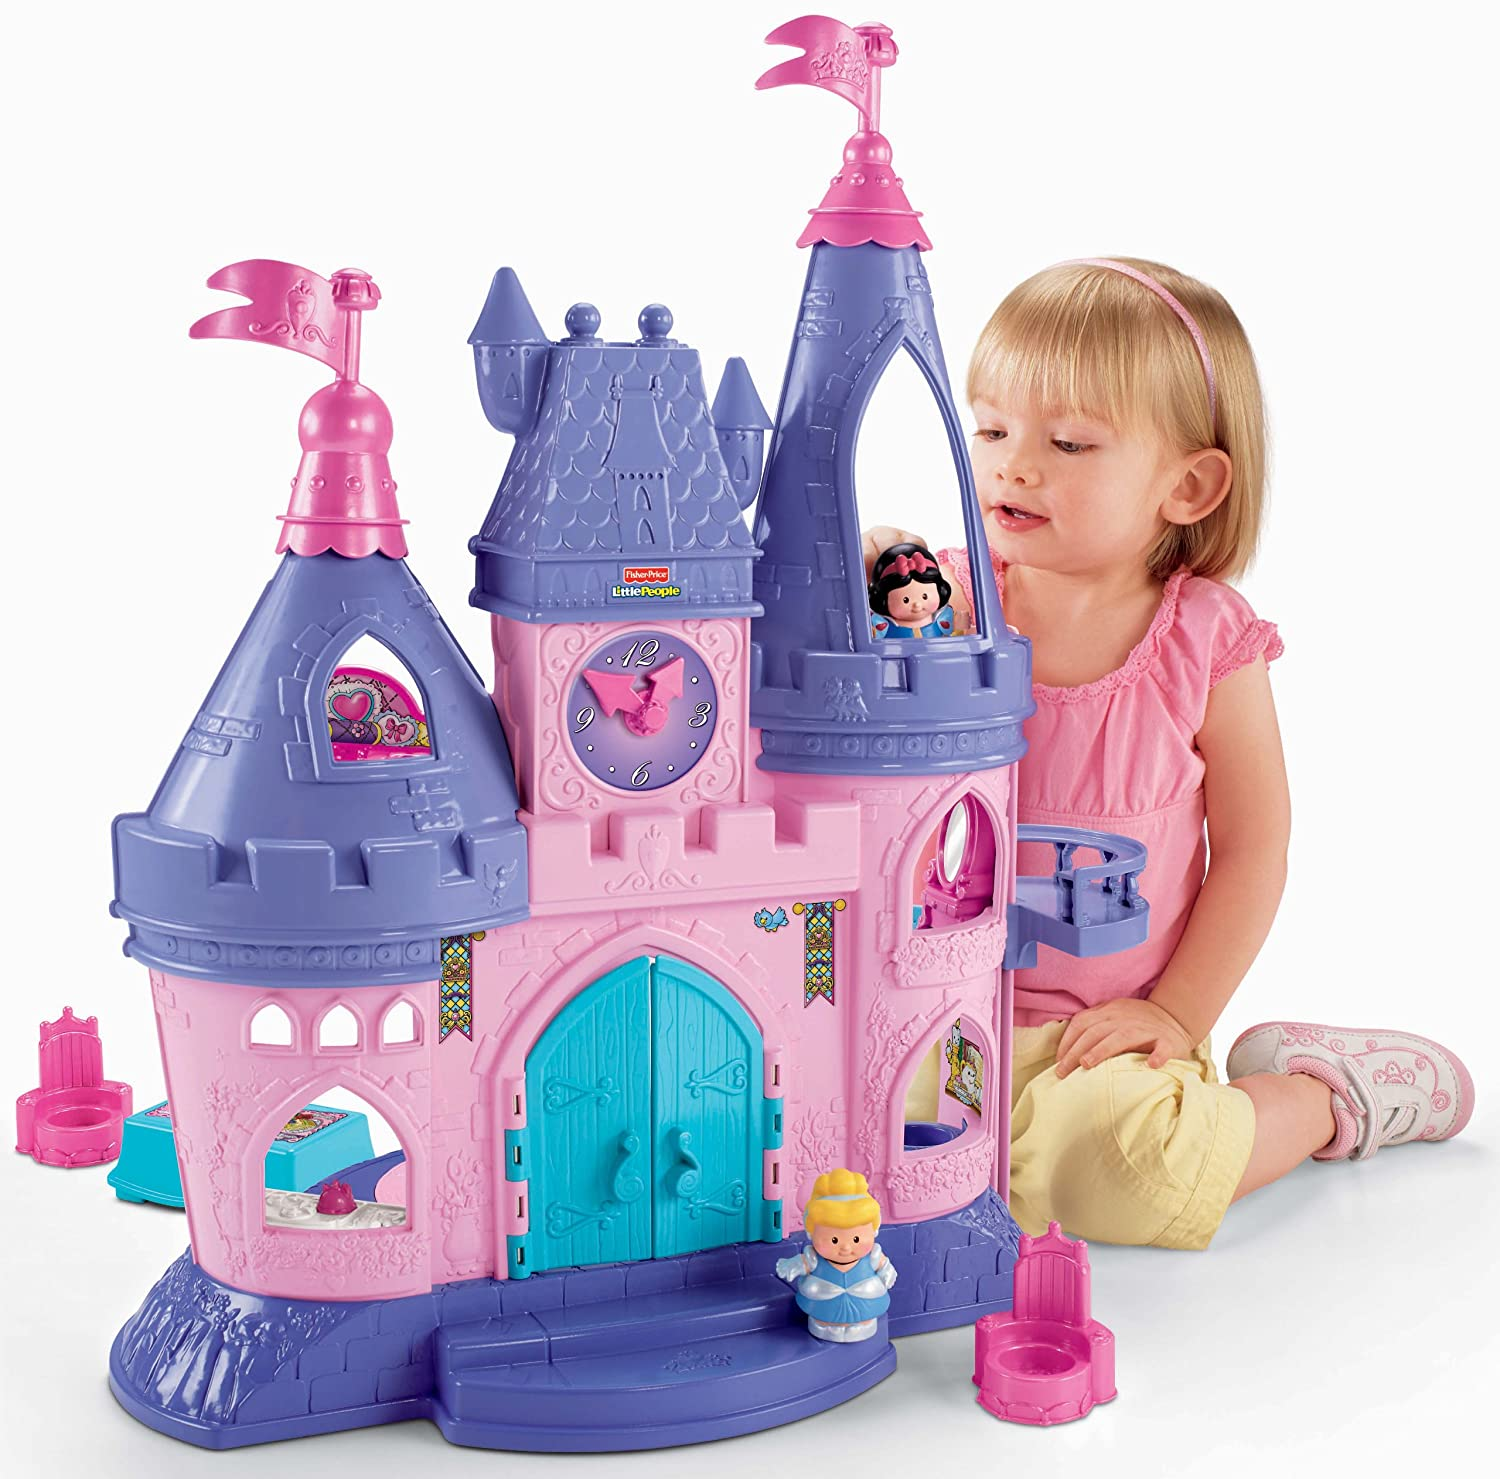 Christmas Gifts Hot Toys for Toddler Girls Ages 3 4 & 5 — Kathln